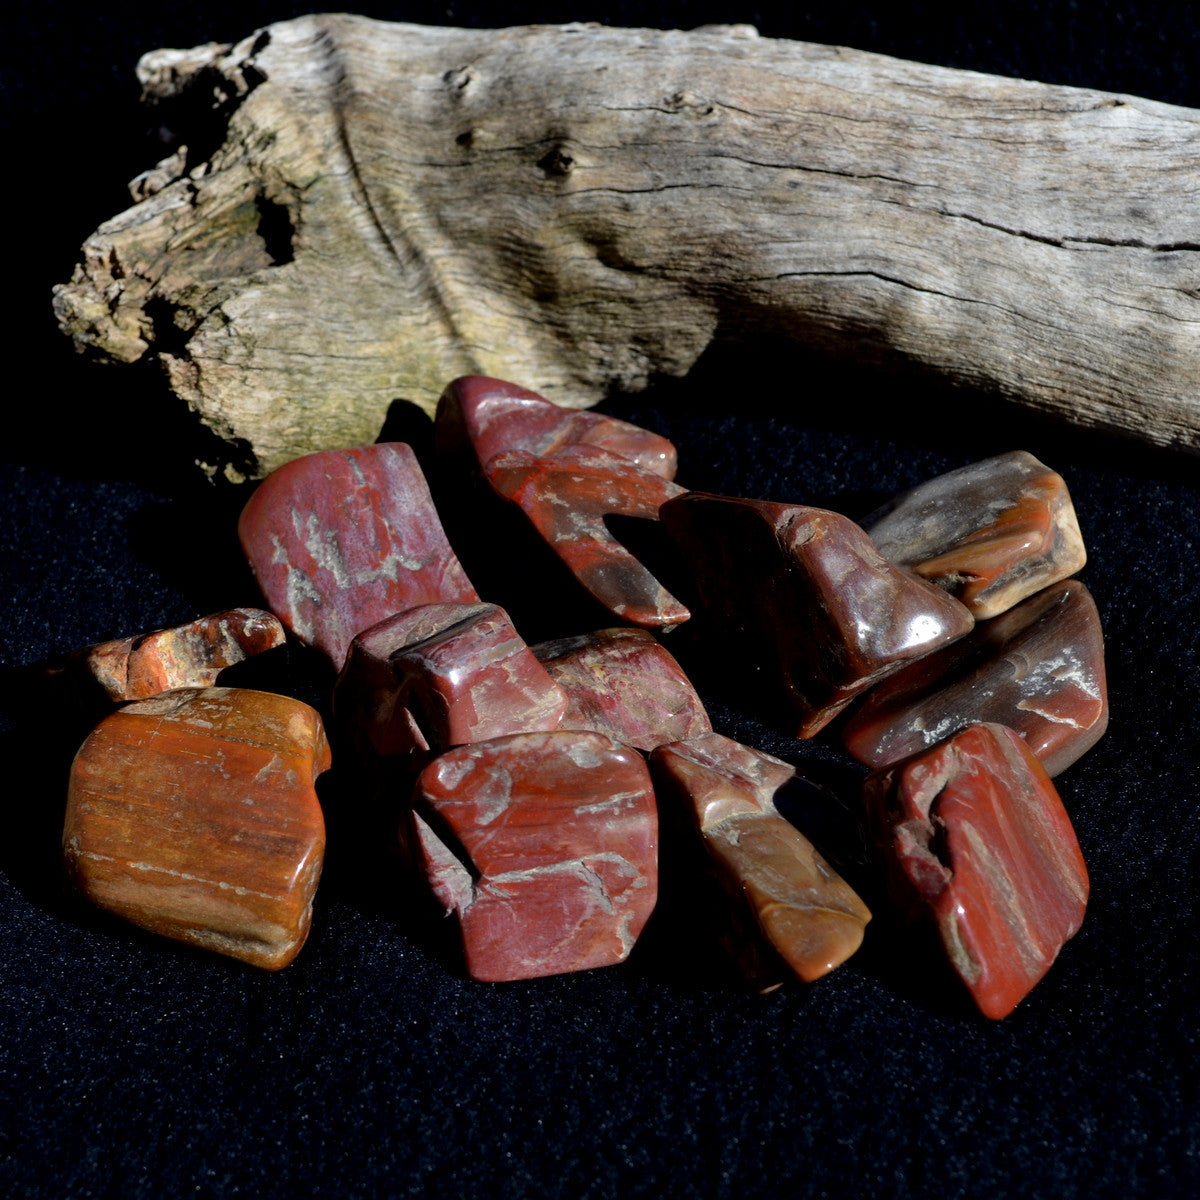 Petrified Wood Fossil Large Tumbles Madagascar - Knowledge Wisdom Grounding - Buy Now at Illiom Crystals - Now with Afterpay